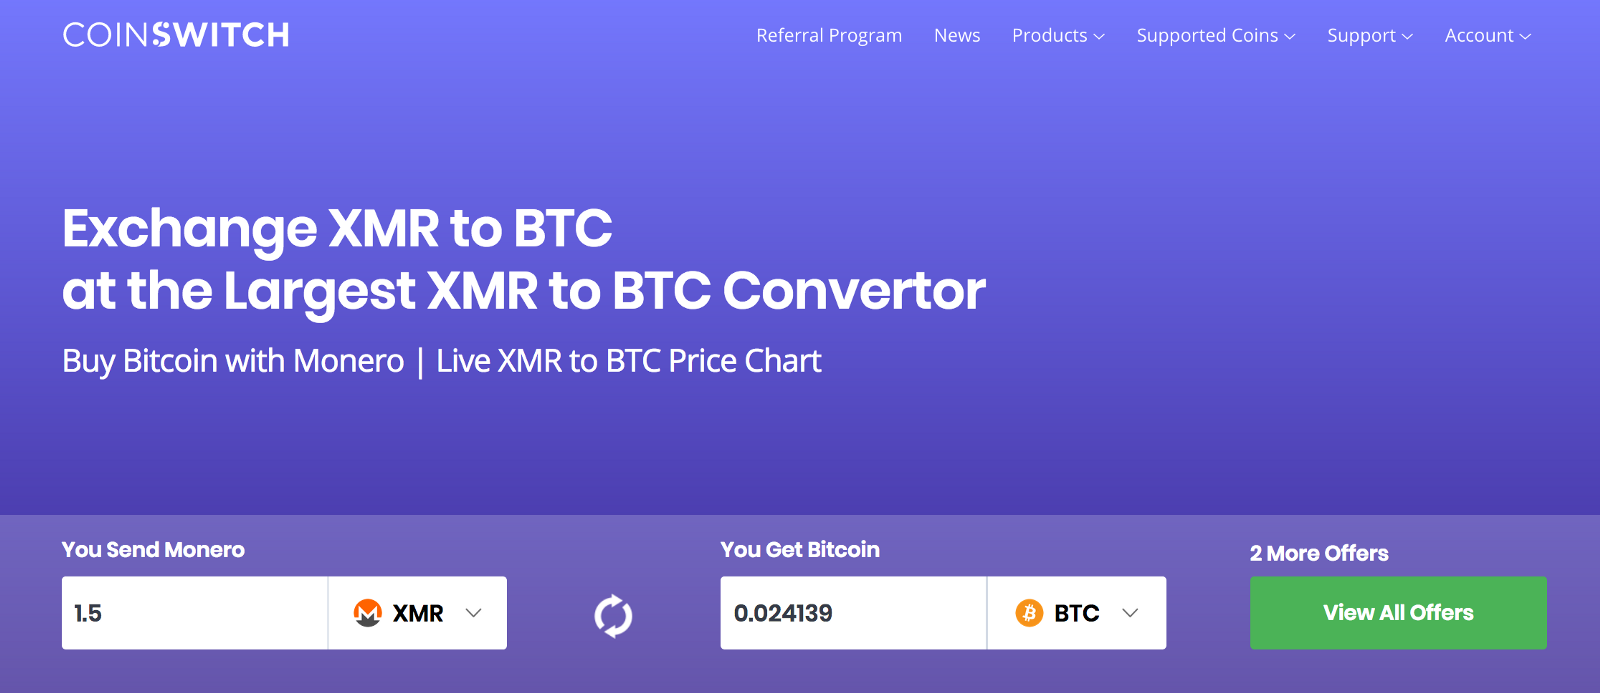 Here You Will See The List Of All Exchanges With Bitcoin Btc Quany They Are Offering Choose Best Exchange To Convert Monero Xmr